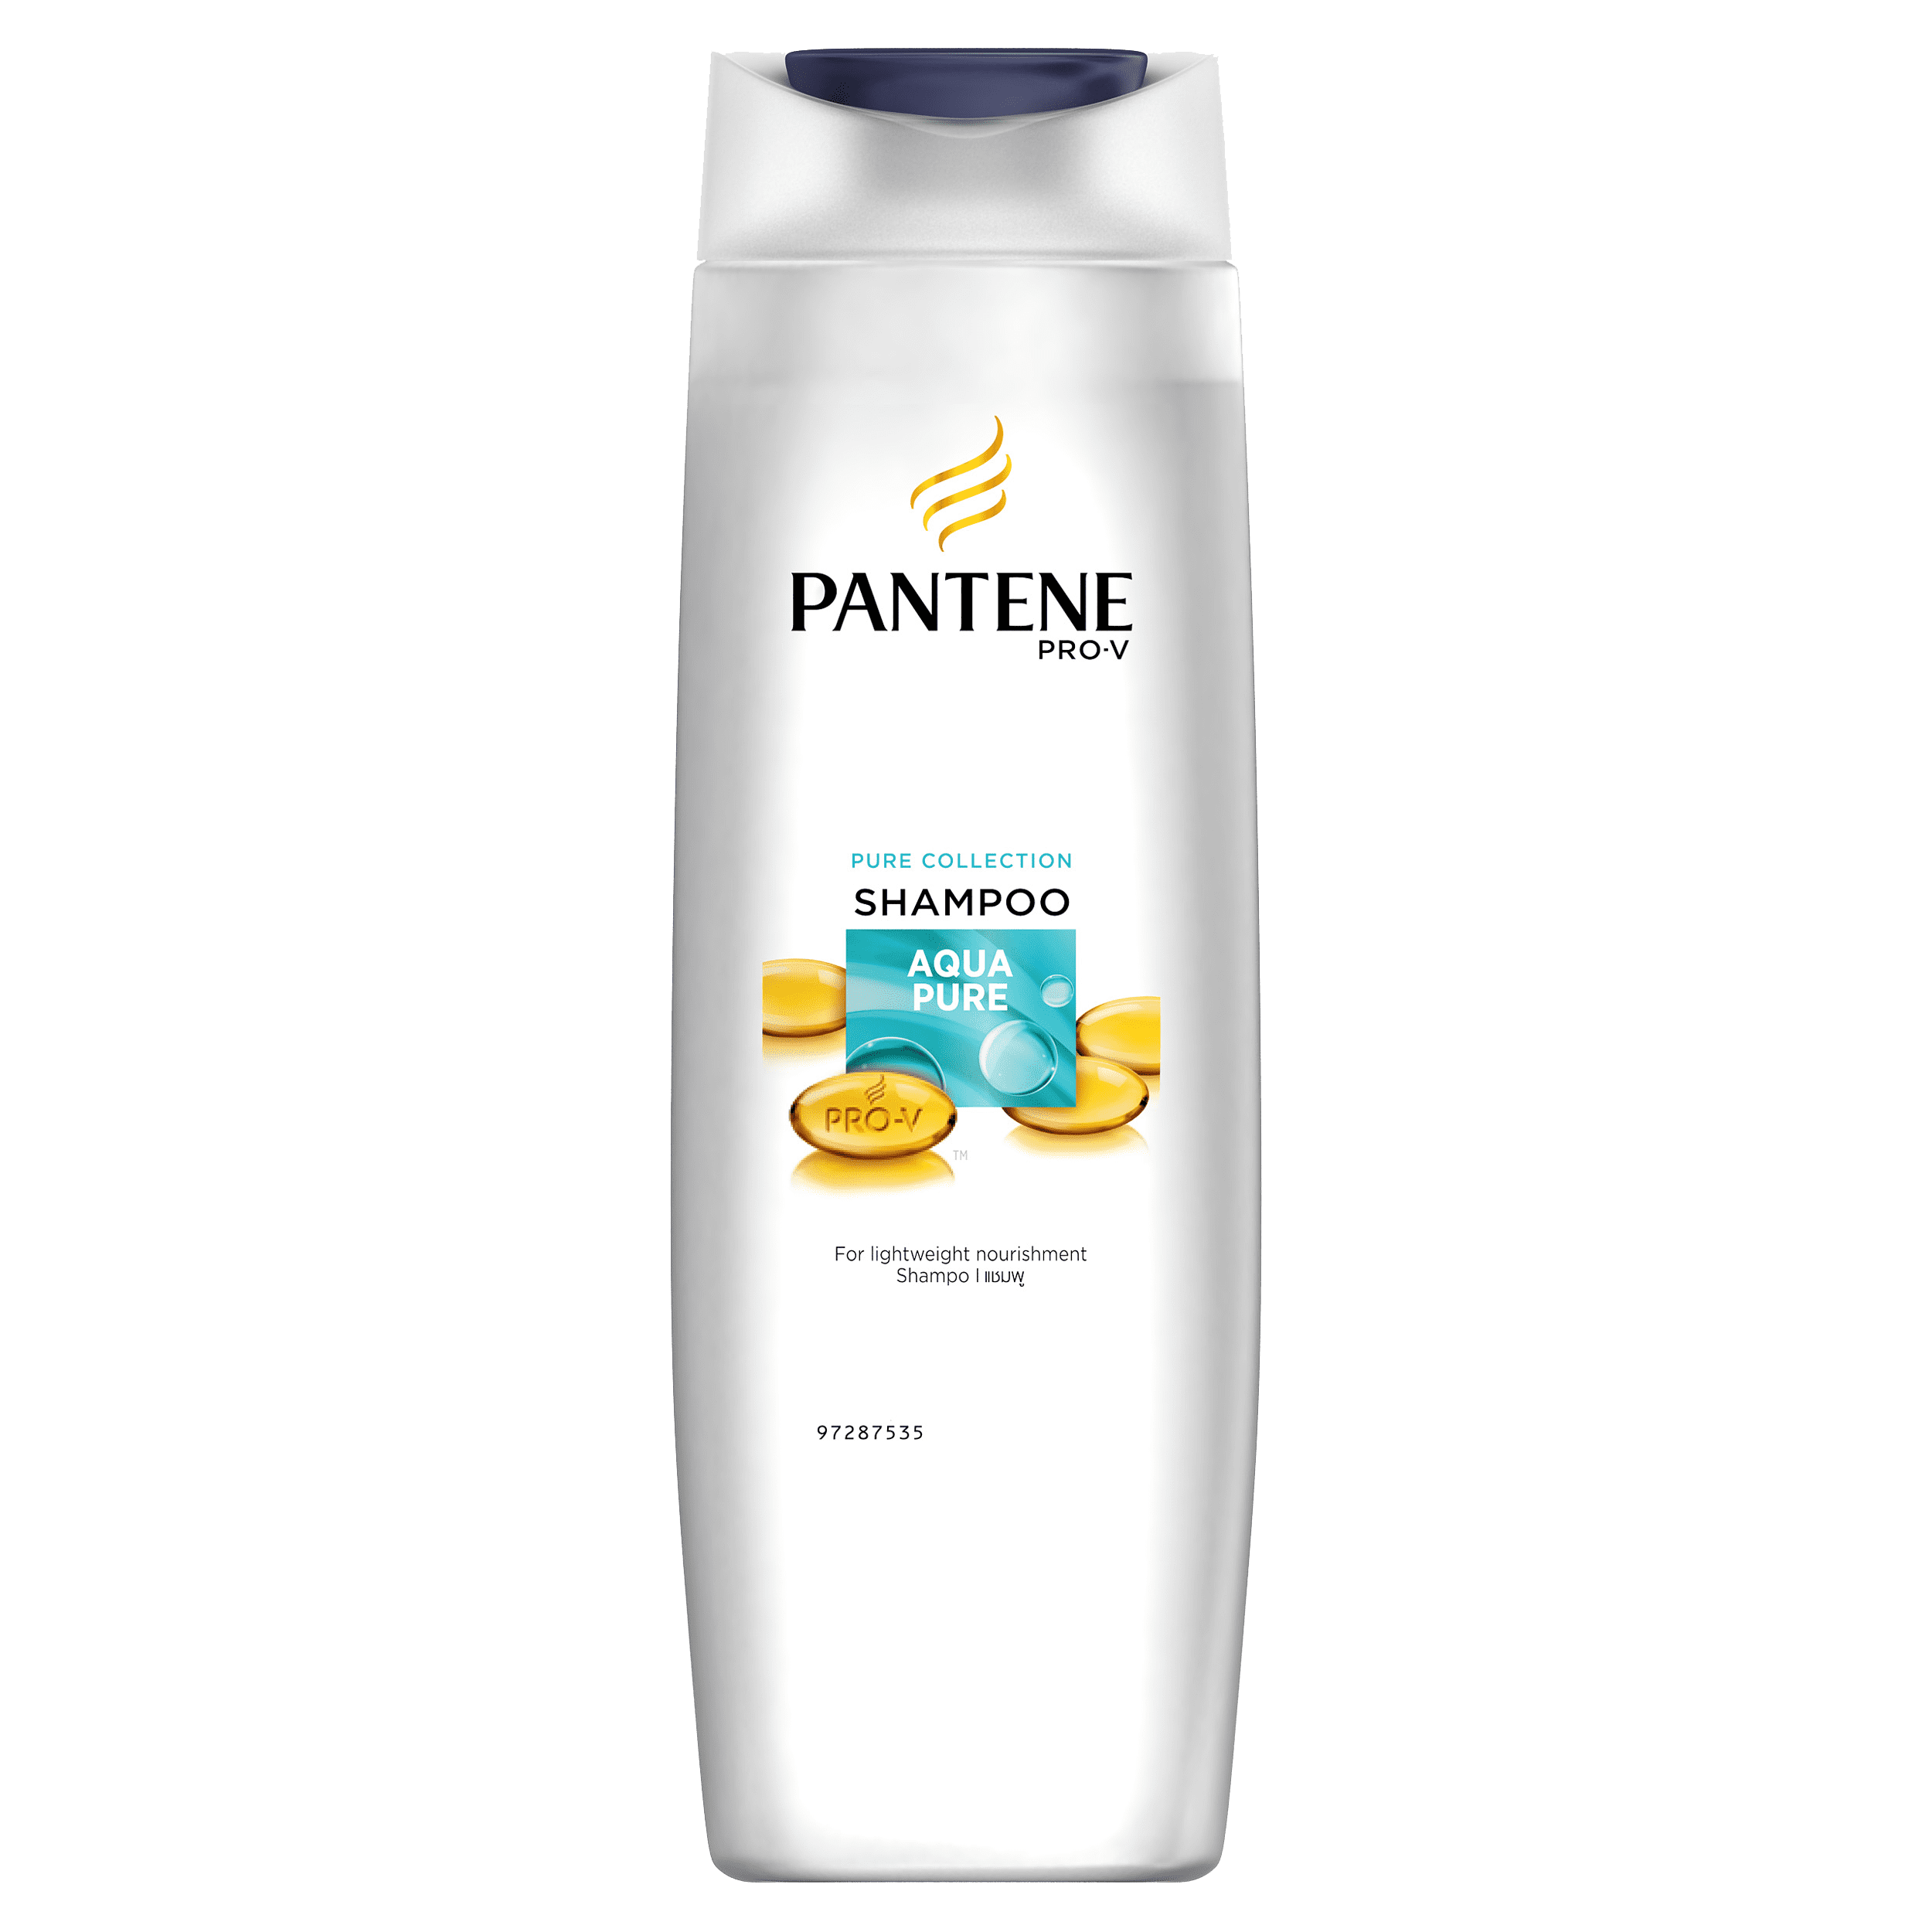 PANTENE Pro-V Pure Collection Shampoo 400ml - Aqua Pure